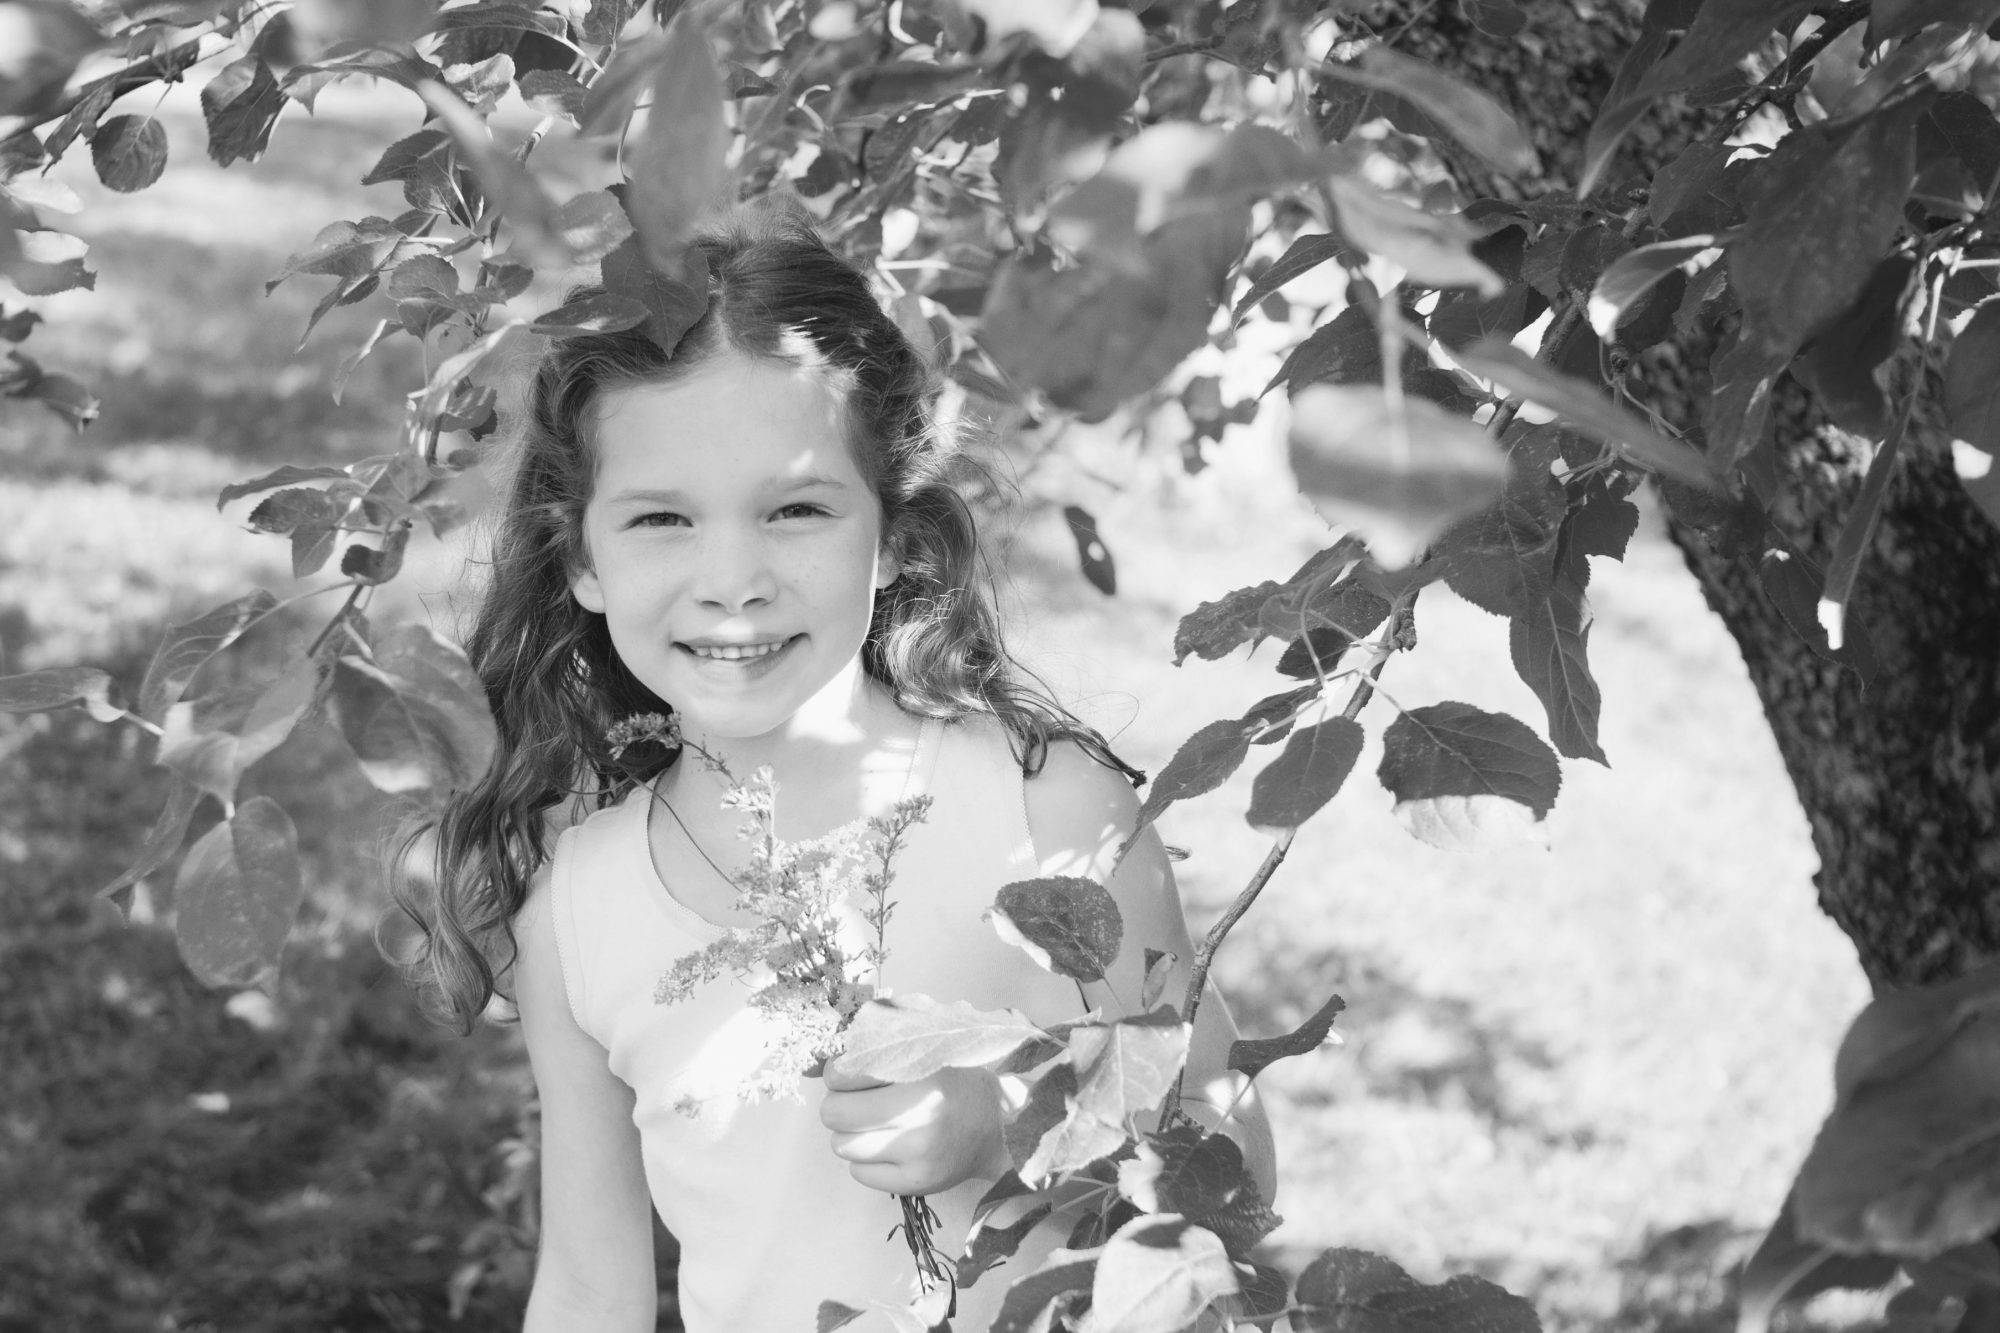 Black and white portrait of young girl next to apple tree